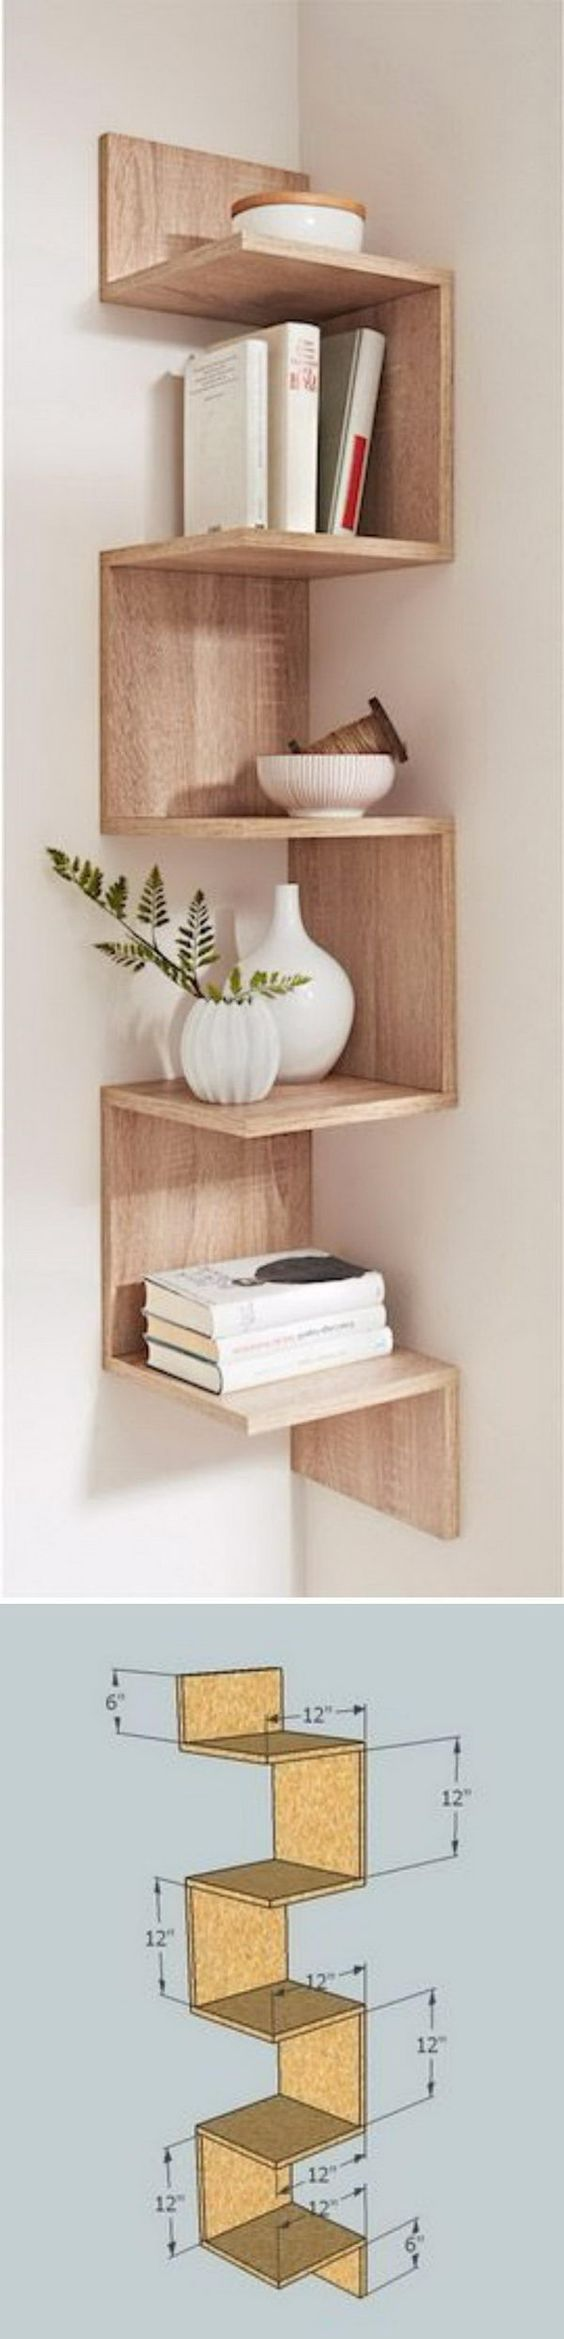 Book Shelf Ideas best 25+ shelf ideas ideas on pinterest | shelves, box shelves and